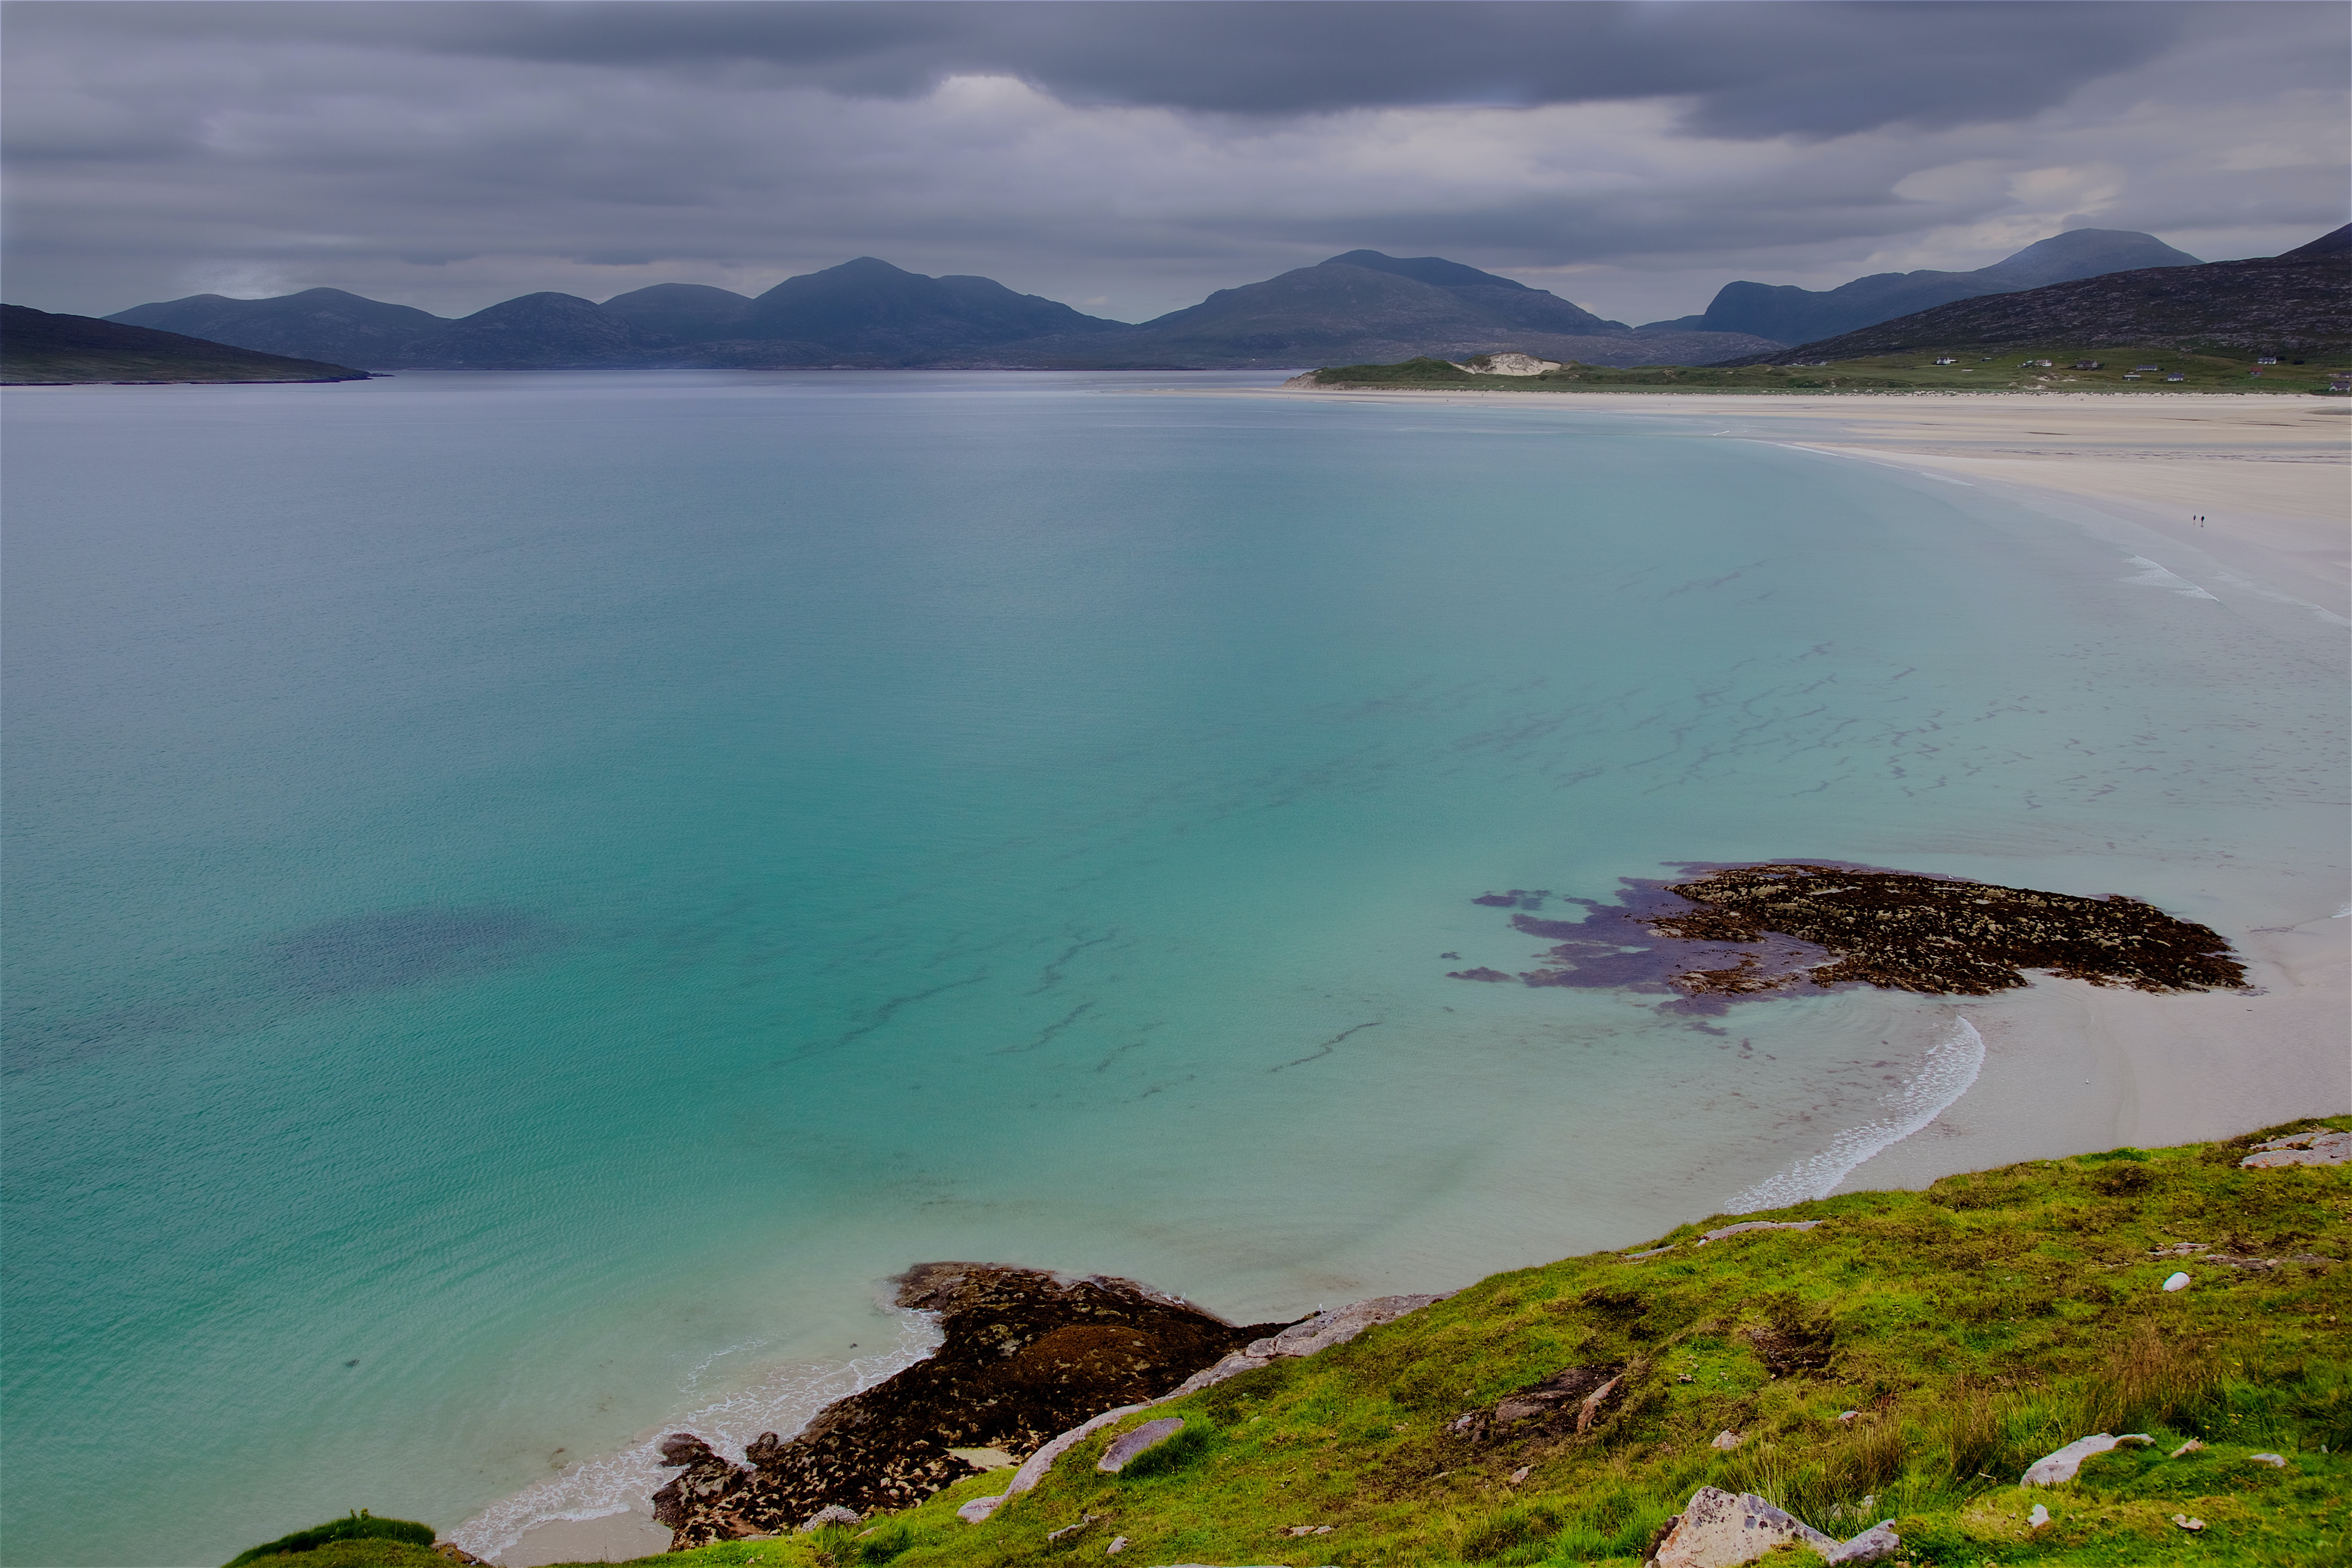 Seilebost Beach, Lewis, Outer Hebrides by Paolo Chiabrando on Unsplash